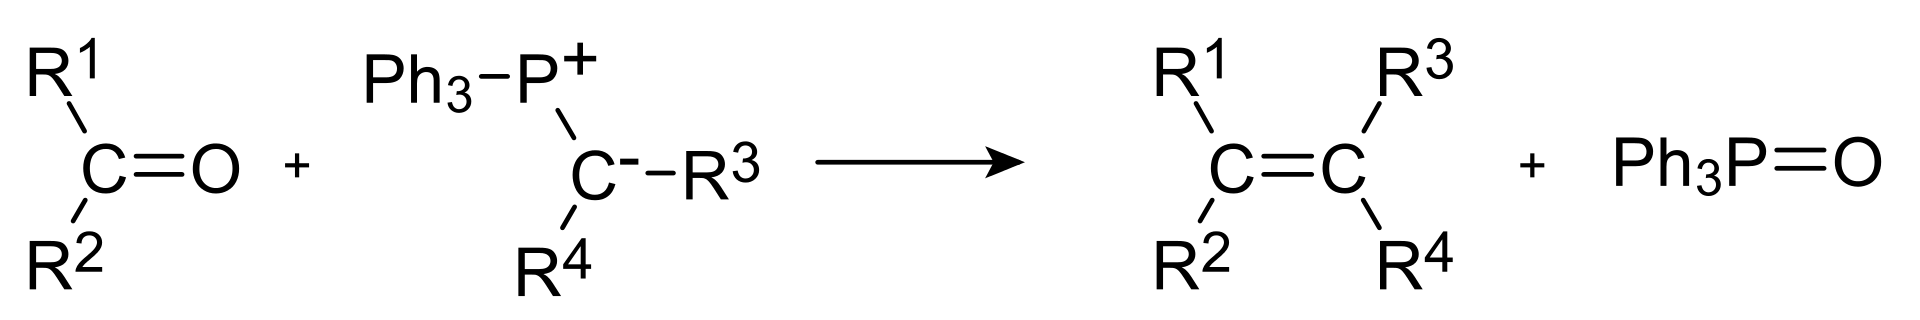 Difference Between Wittig Reaction and Wittig Rearrangement